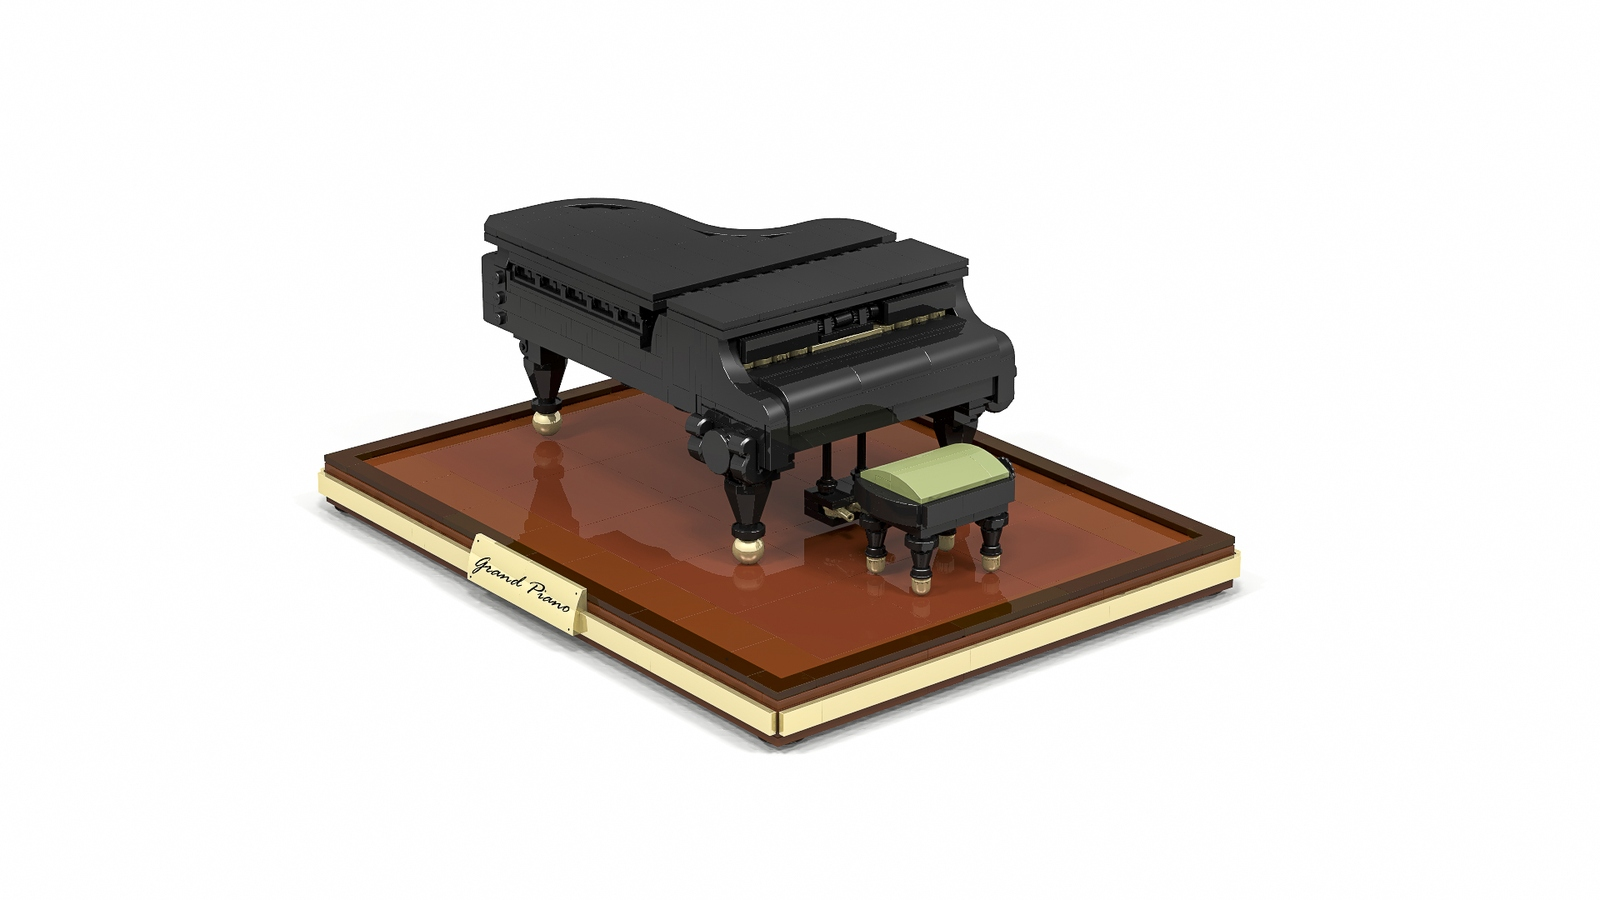 Lego Ideas Product The Grand Piano Keyboard Sustain Pedal Wiring Diagram